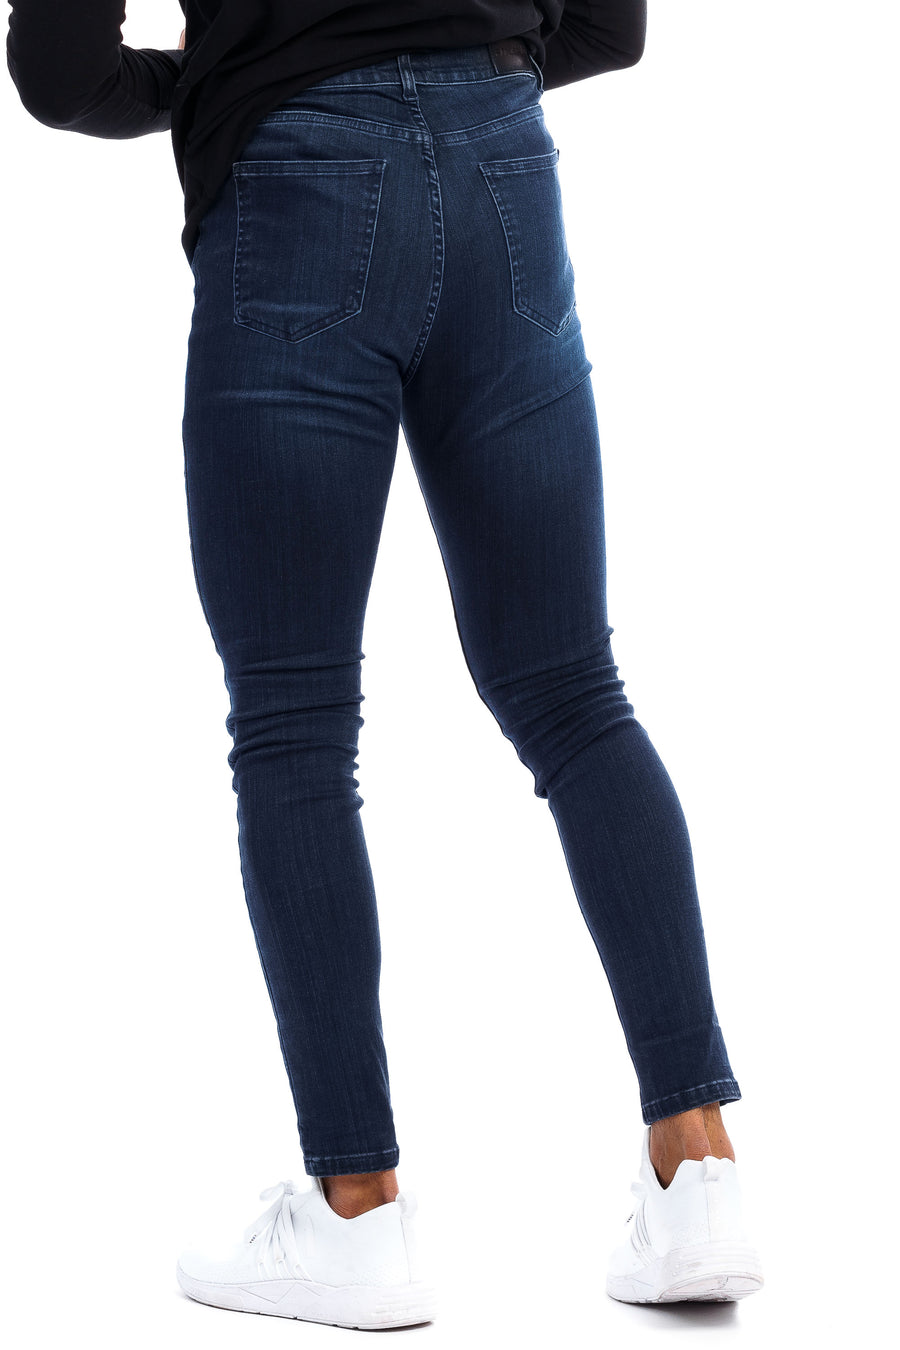 Mens 360 Fitjeans - Blue shade